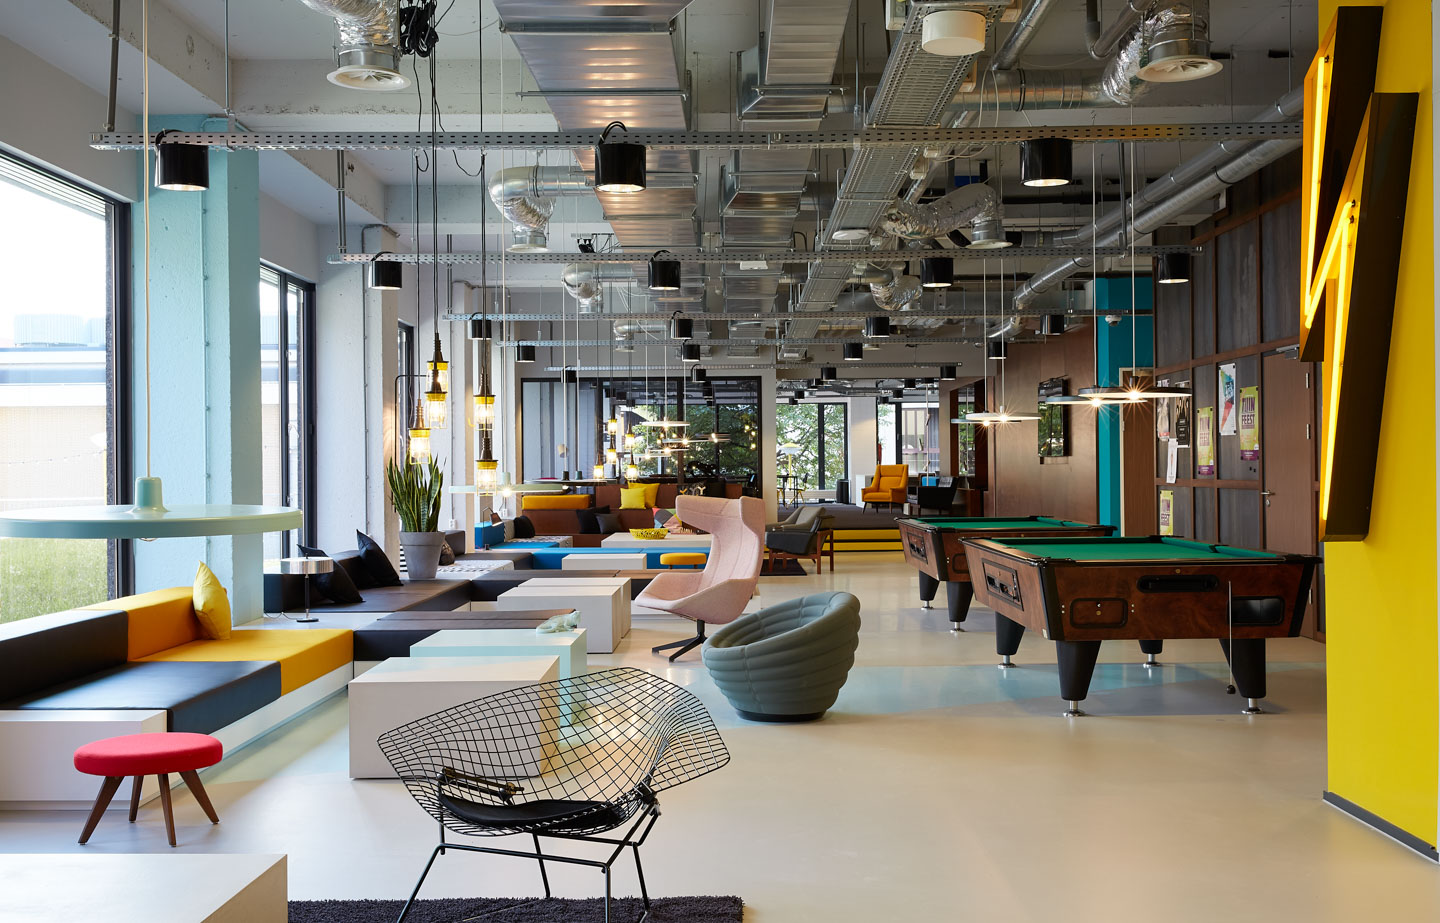 The student hotel amsterdam west modern design hotel for Design hotels